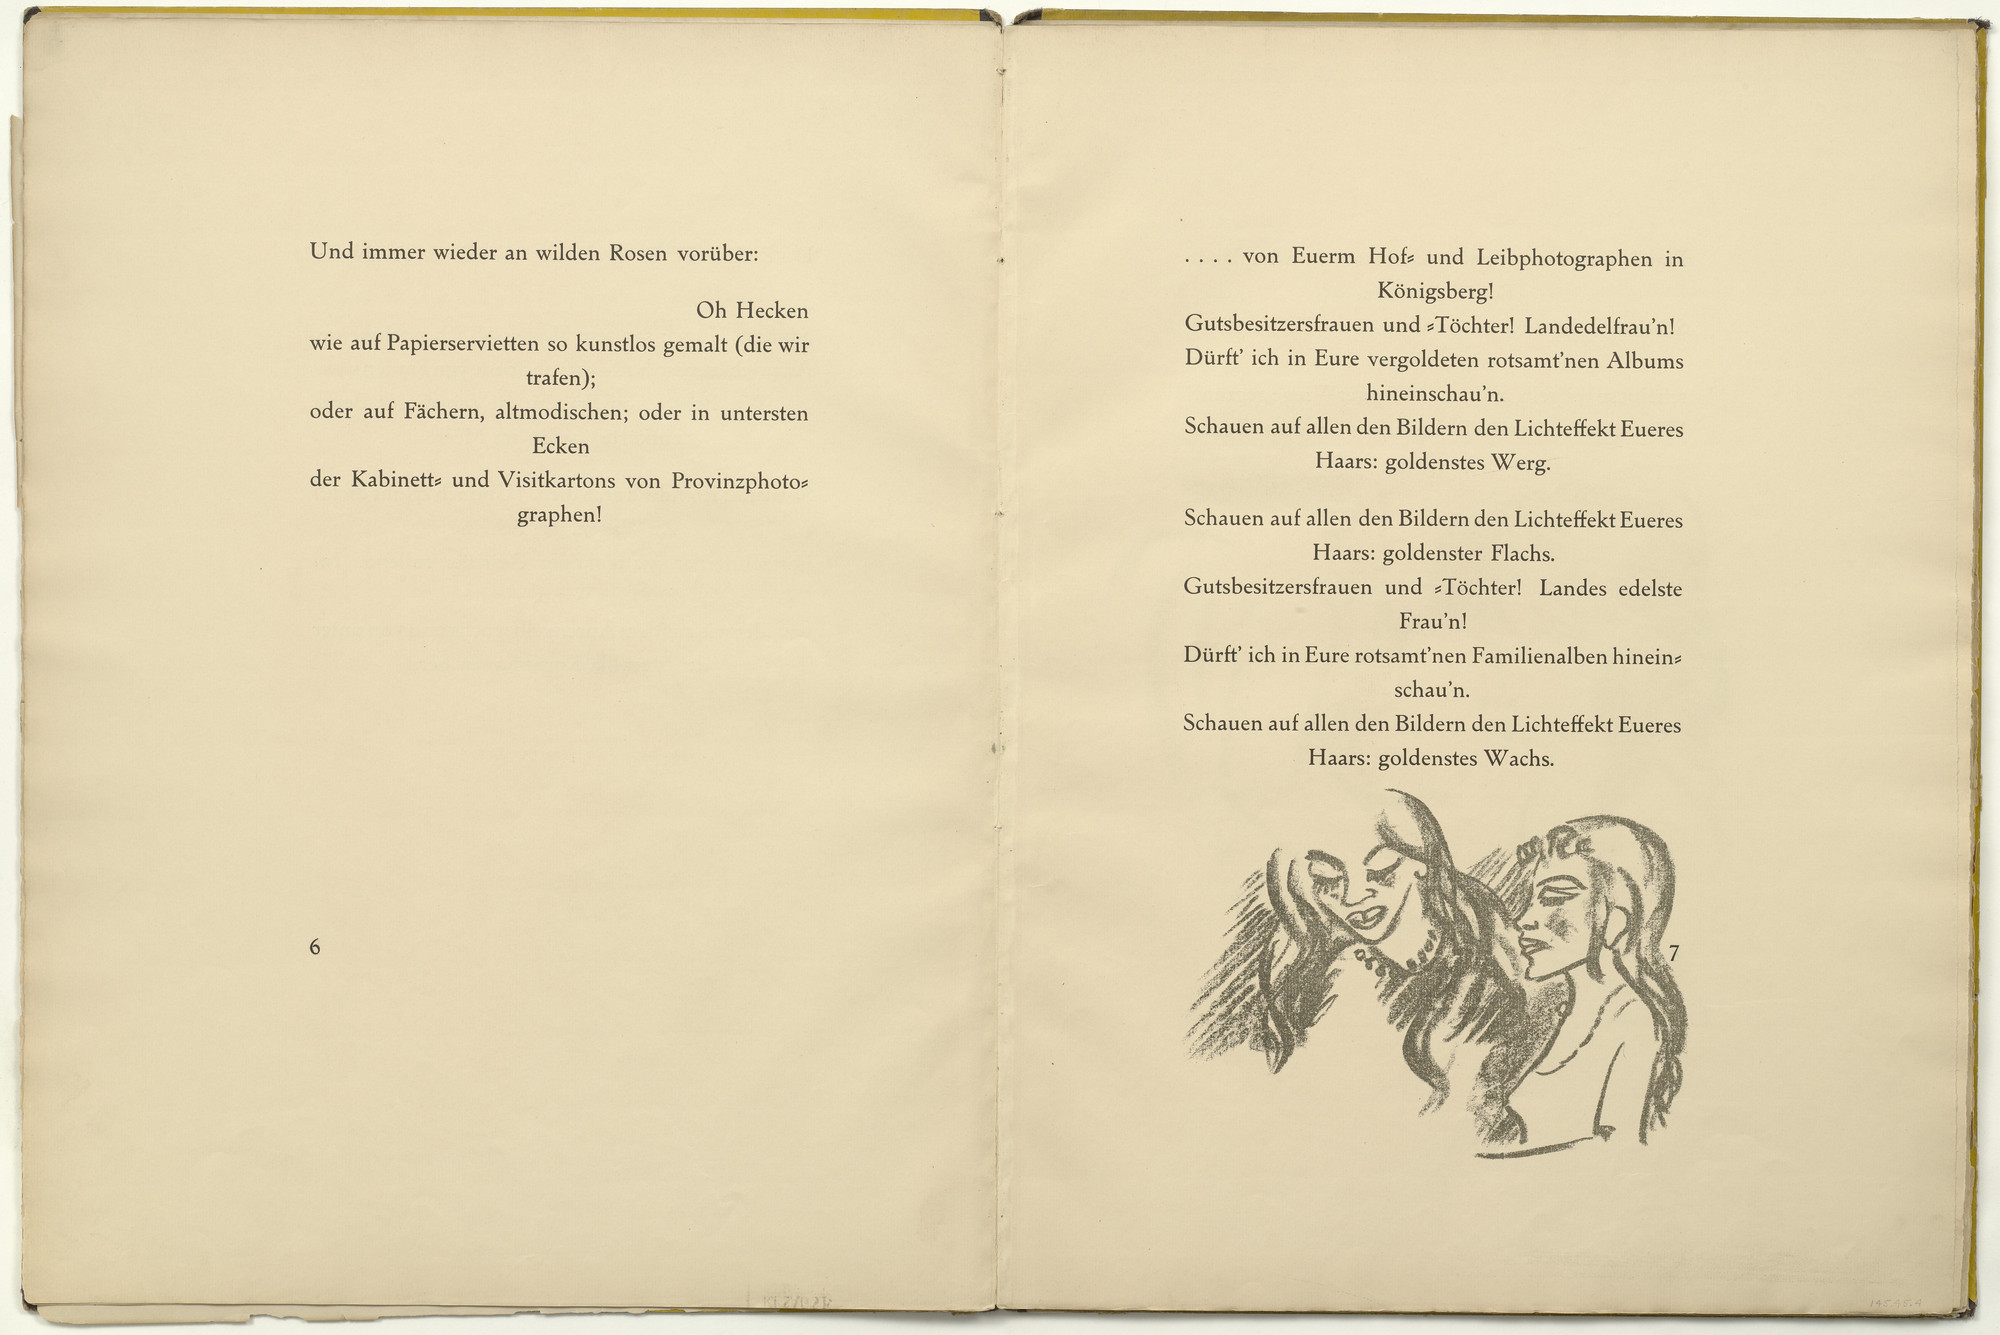 Max Pechstein. Untitled (in-text plate, page 7) from Die Samländische Ode (The Samland Ode). 1918 (executed 1917)